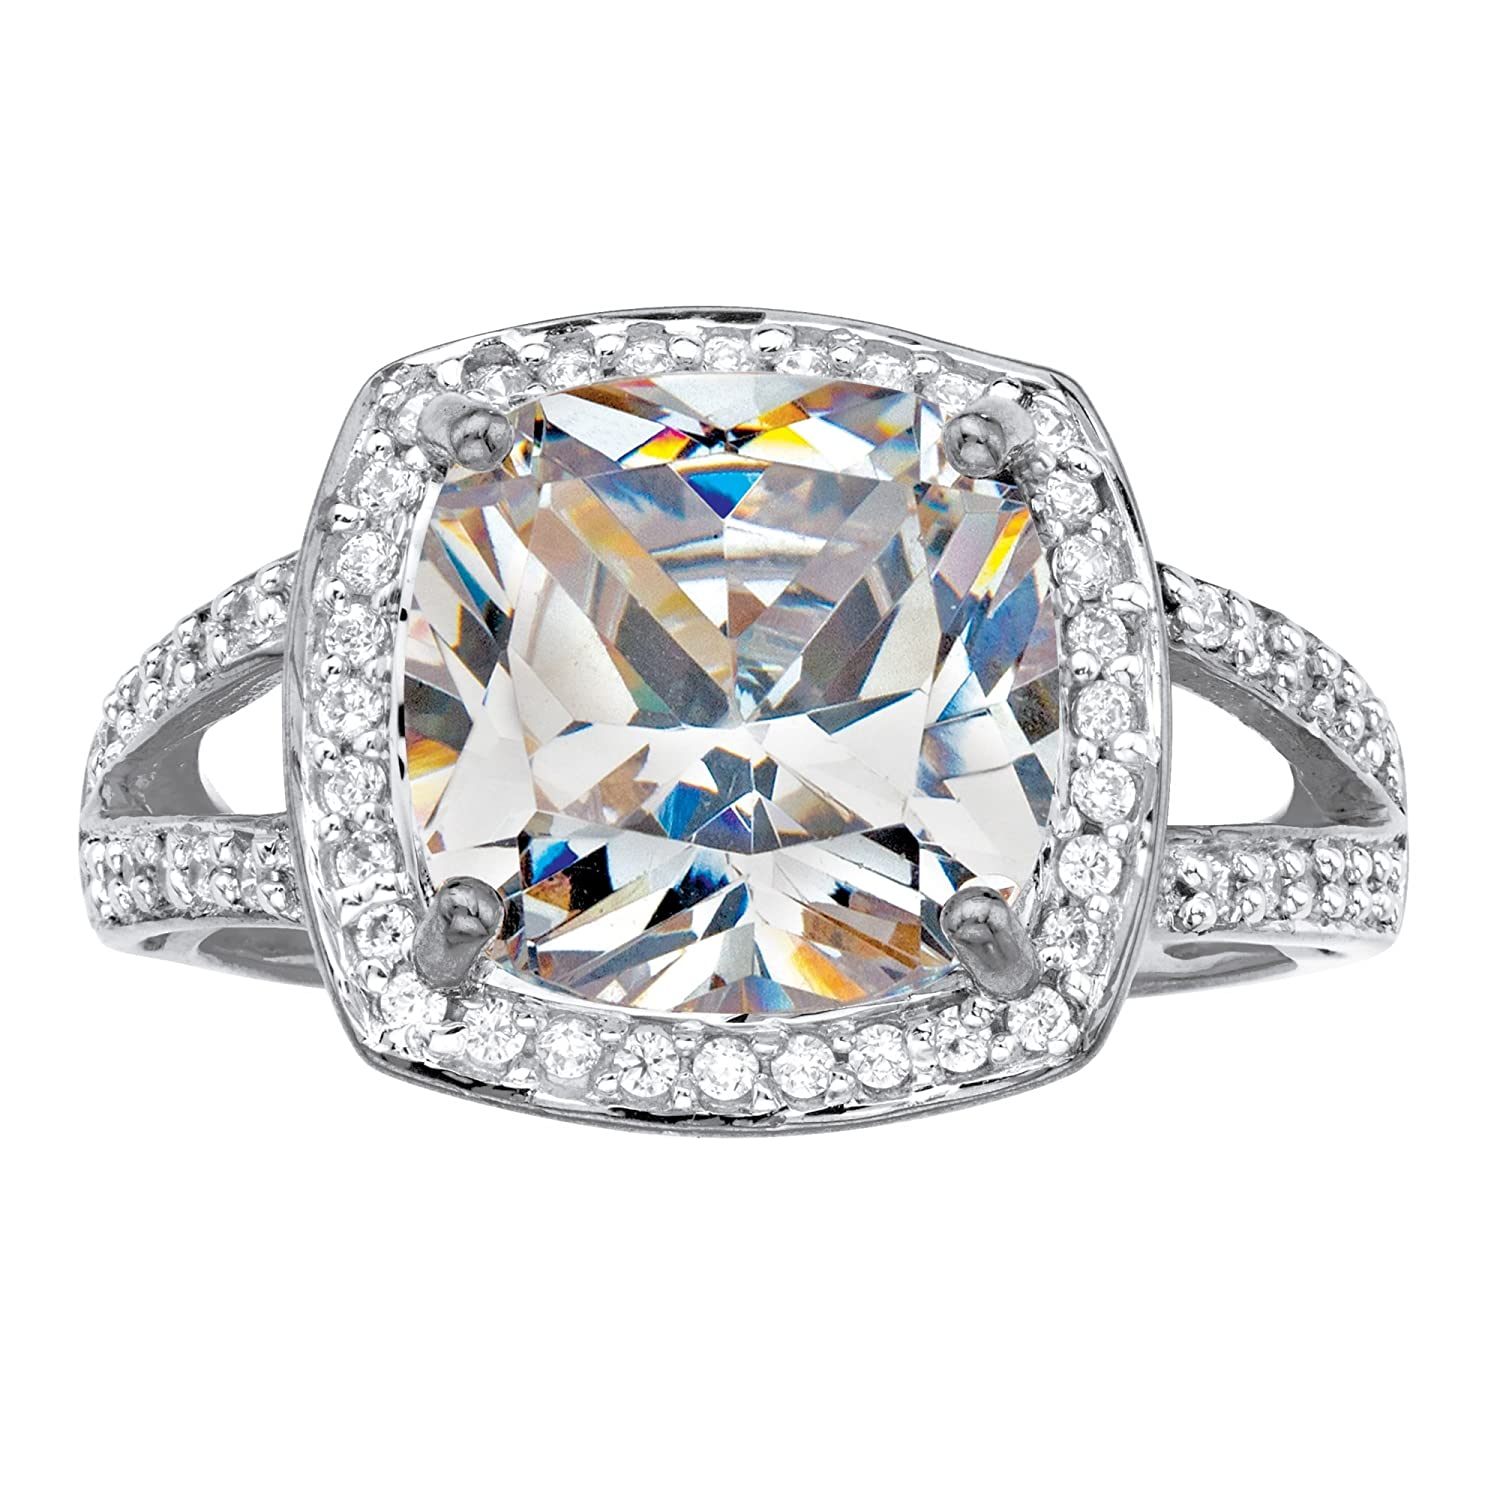 Solid 10k White Gold Cushion Cut White Cubic Zirconia Halo Engagement Ring